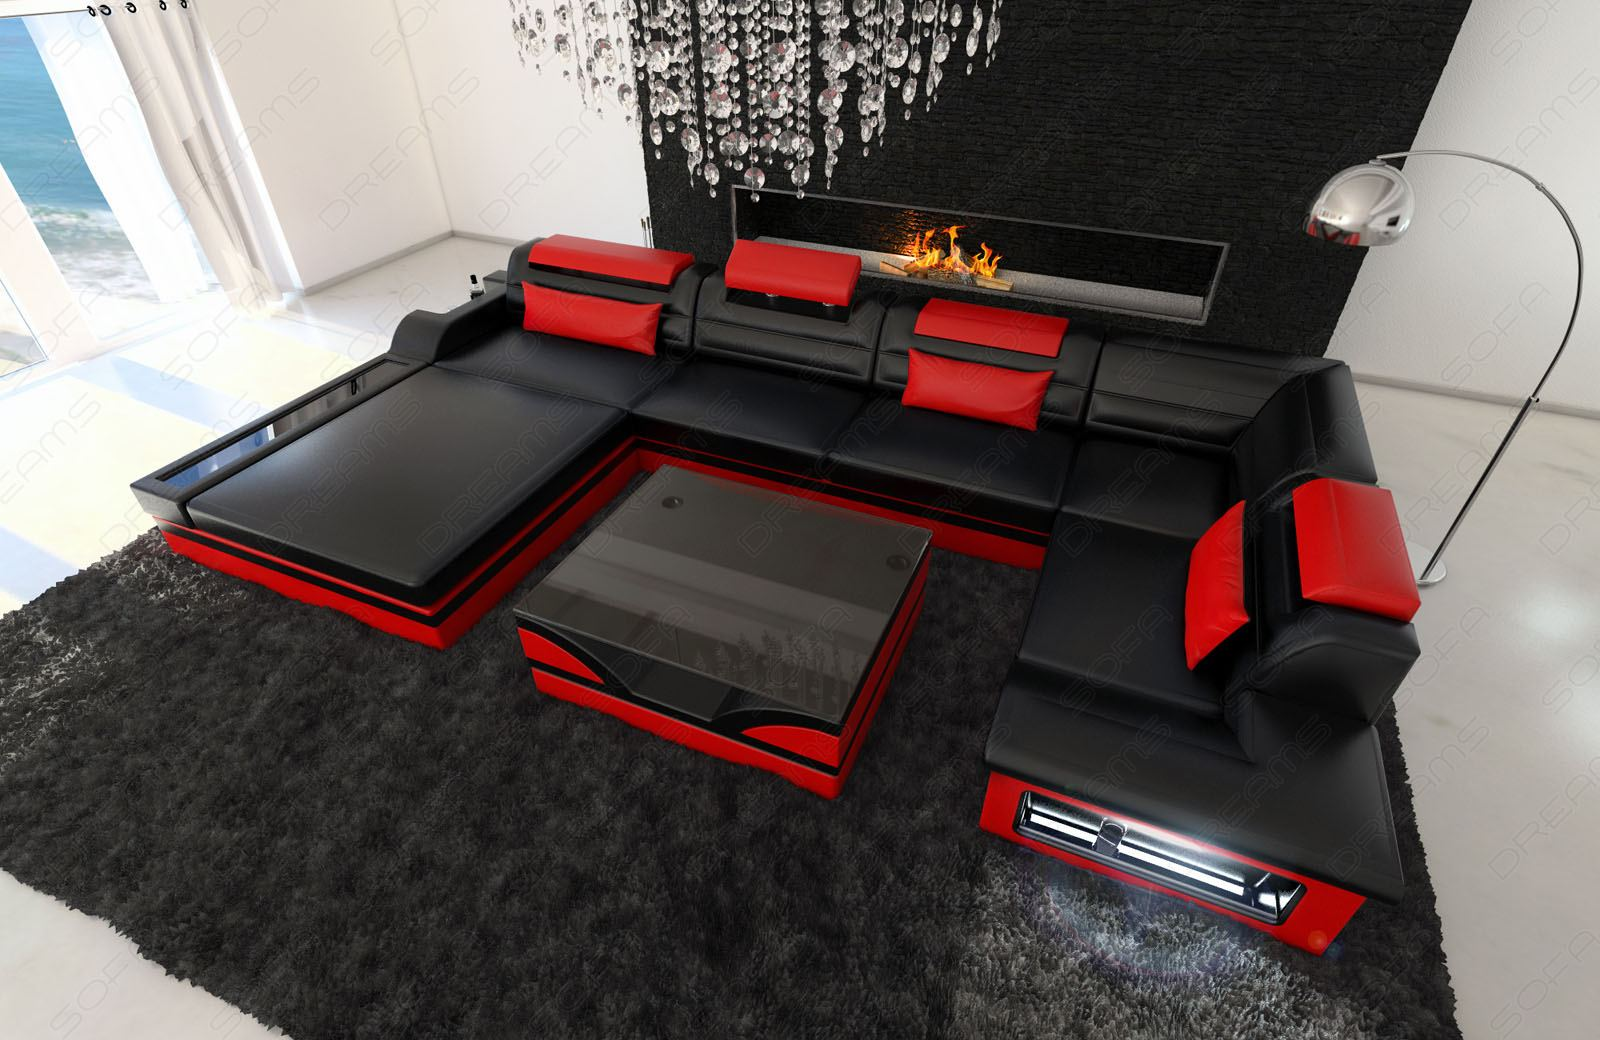 leather sofa luxury interior design mezzo design couch black red ebay. Black Bedroom Furniture Sets. Home Design Ideas